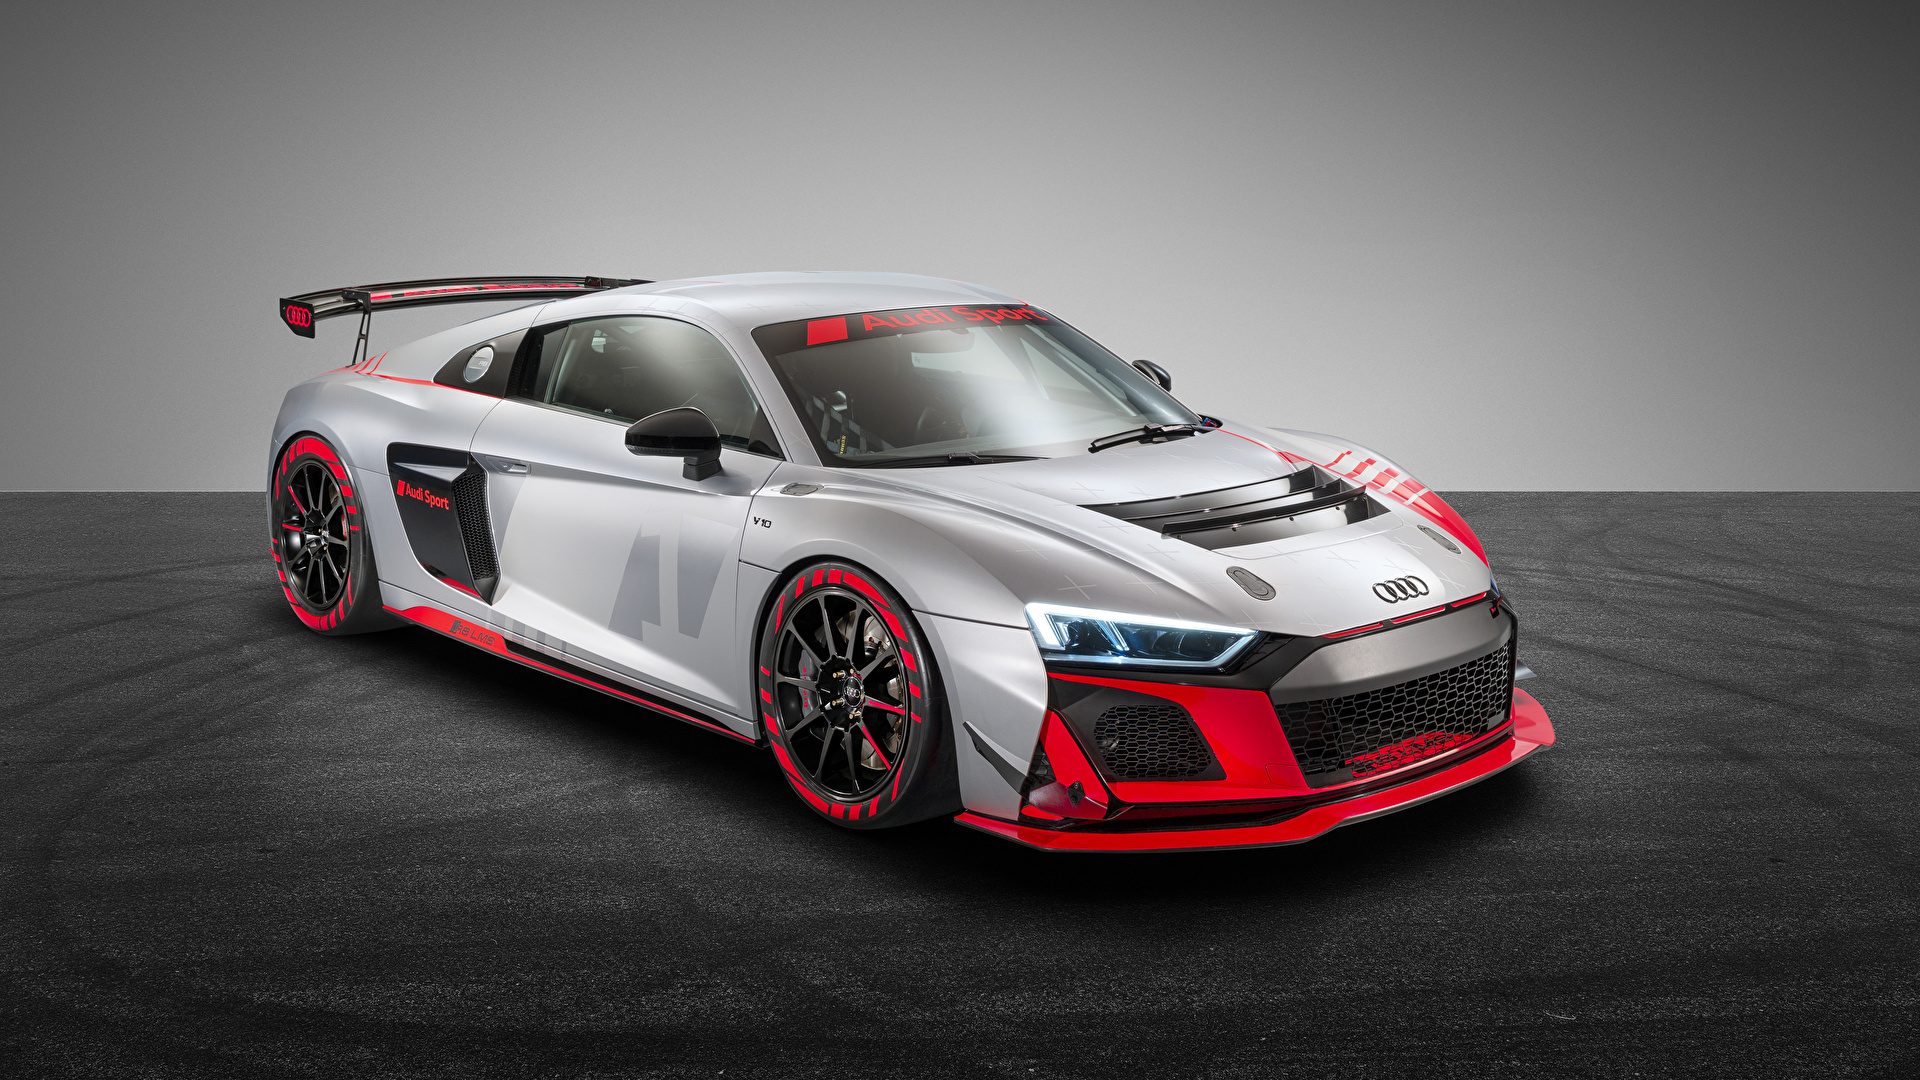 Images Audi Tuning 2019 20 R8 Lms Gt4 Silver Color Cars 1920x1080